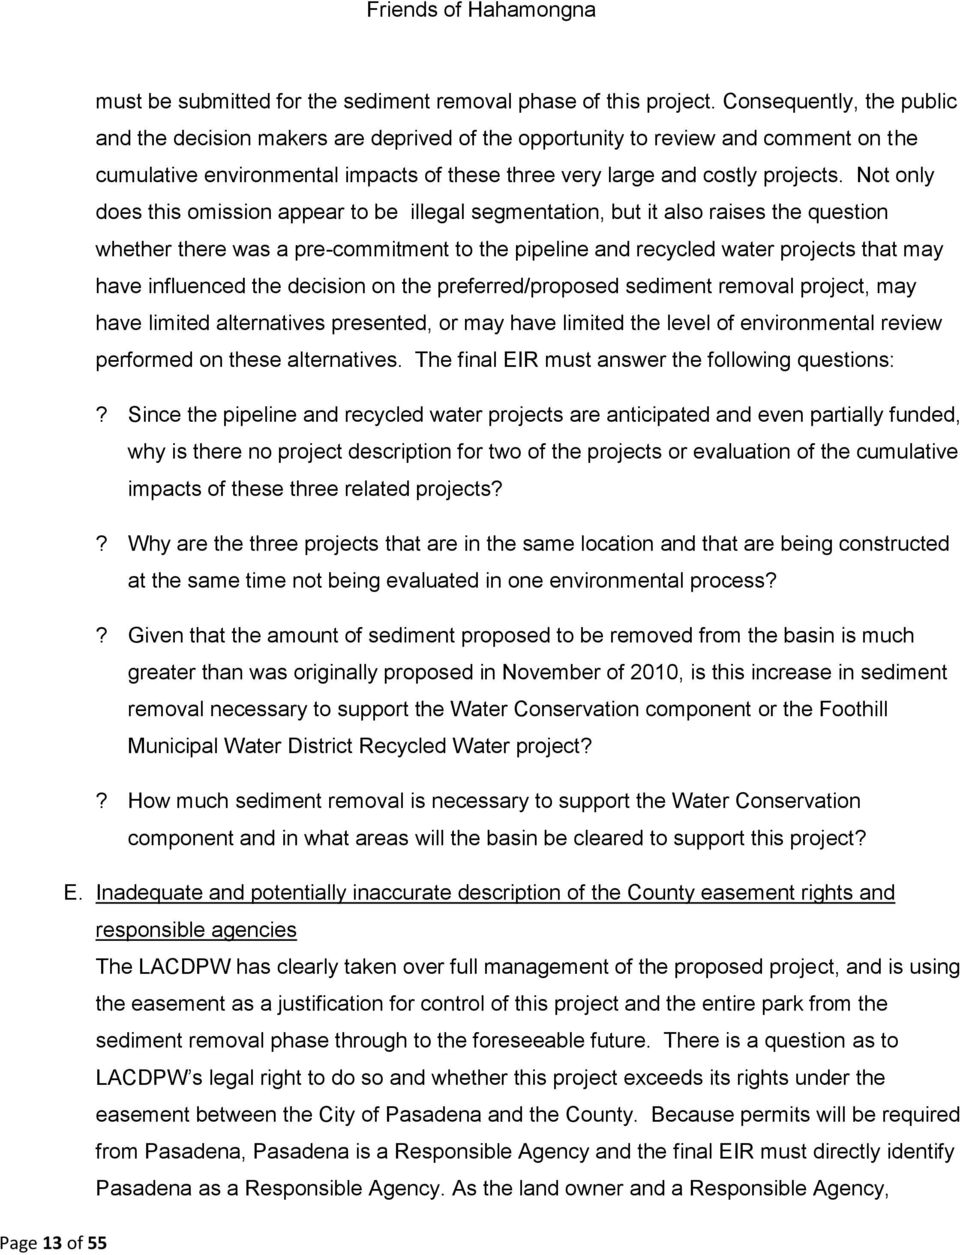 Not only does this omission appear to be illegal segmentation, but it also raises the question whether there was a pre-commitment to the pipeline and recycled water projects that may have influenced